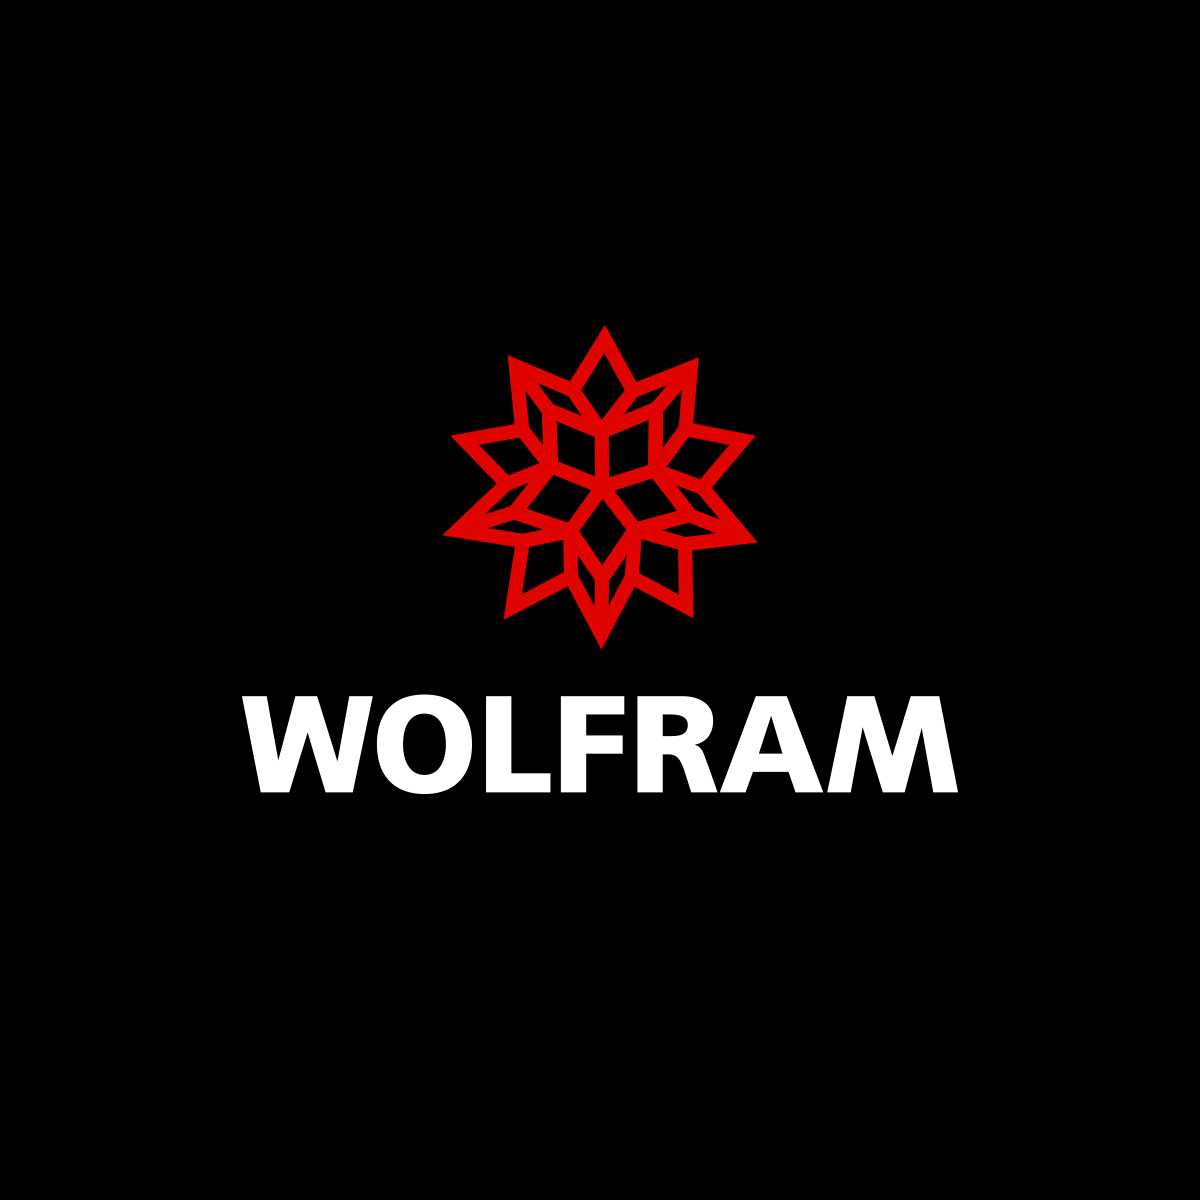 [The logo for Wolfram, makers of Mathematica]